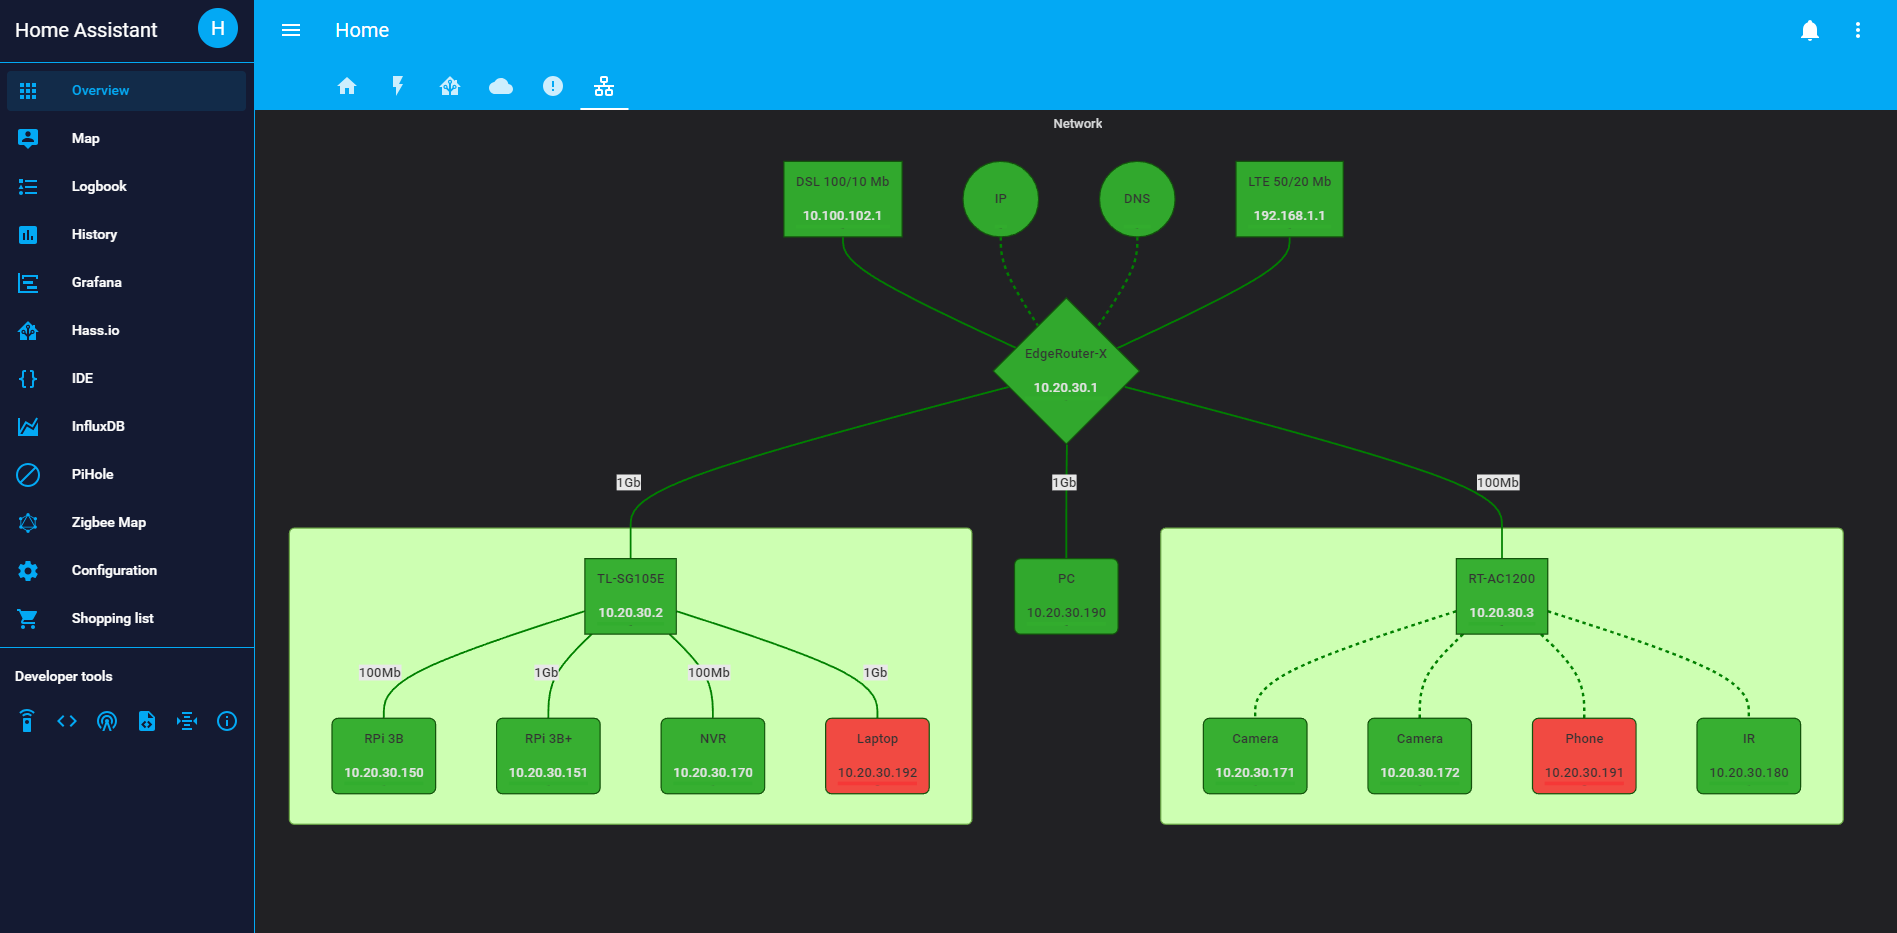 Live network diagram ( InfluxDB + Grafana + Mermaid ) - Share your